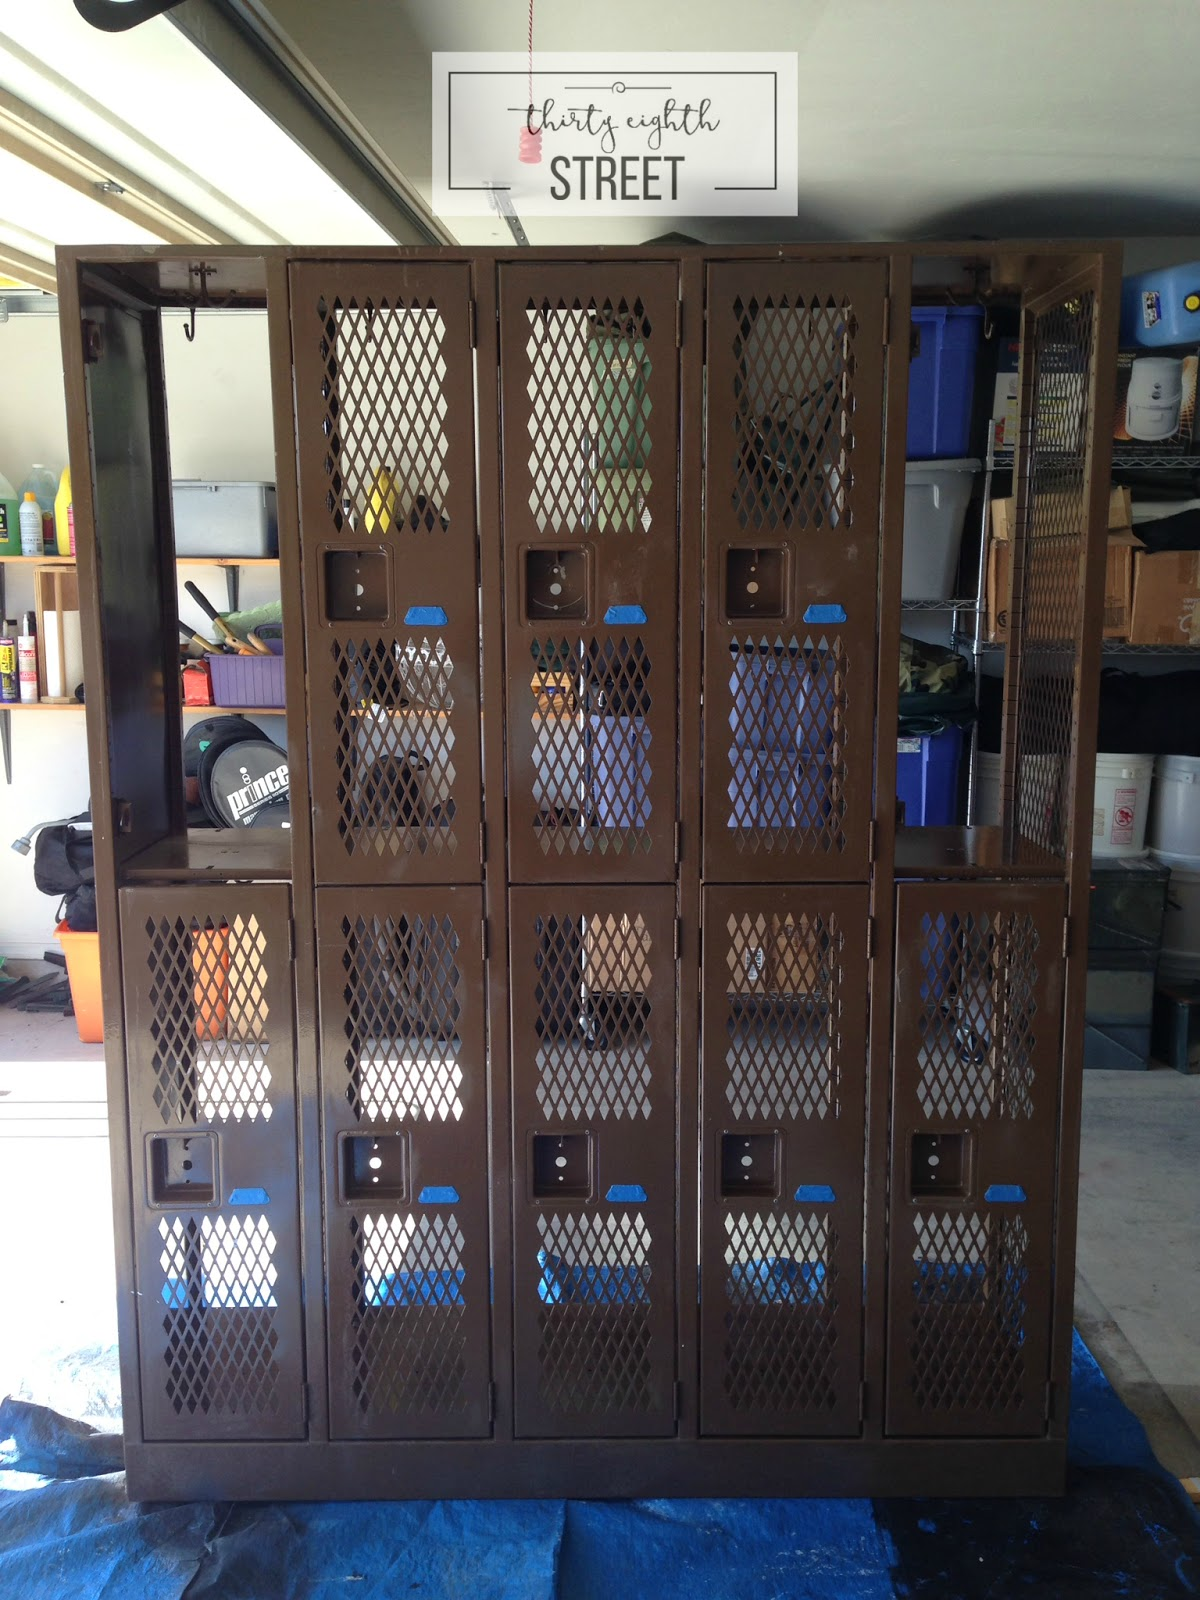 Industrial Locker Makeover - Thirty Eighth Street